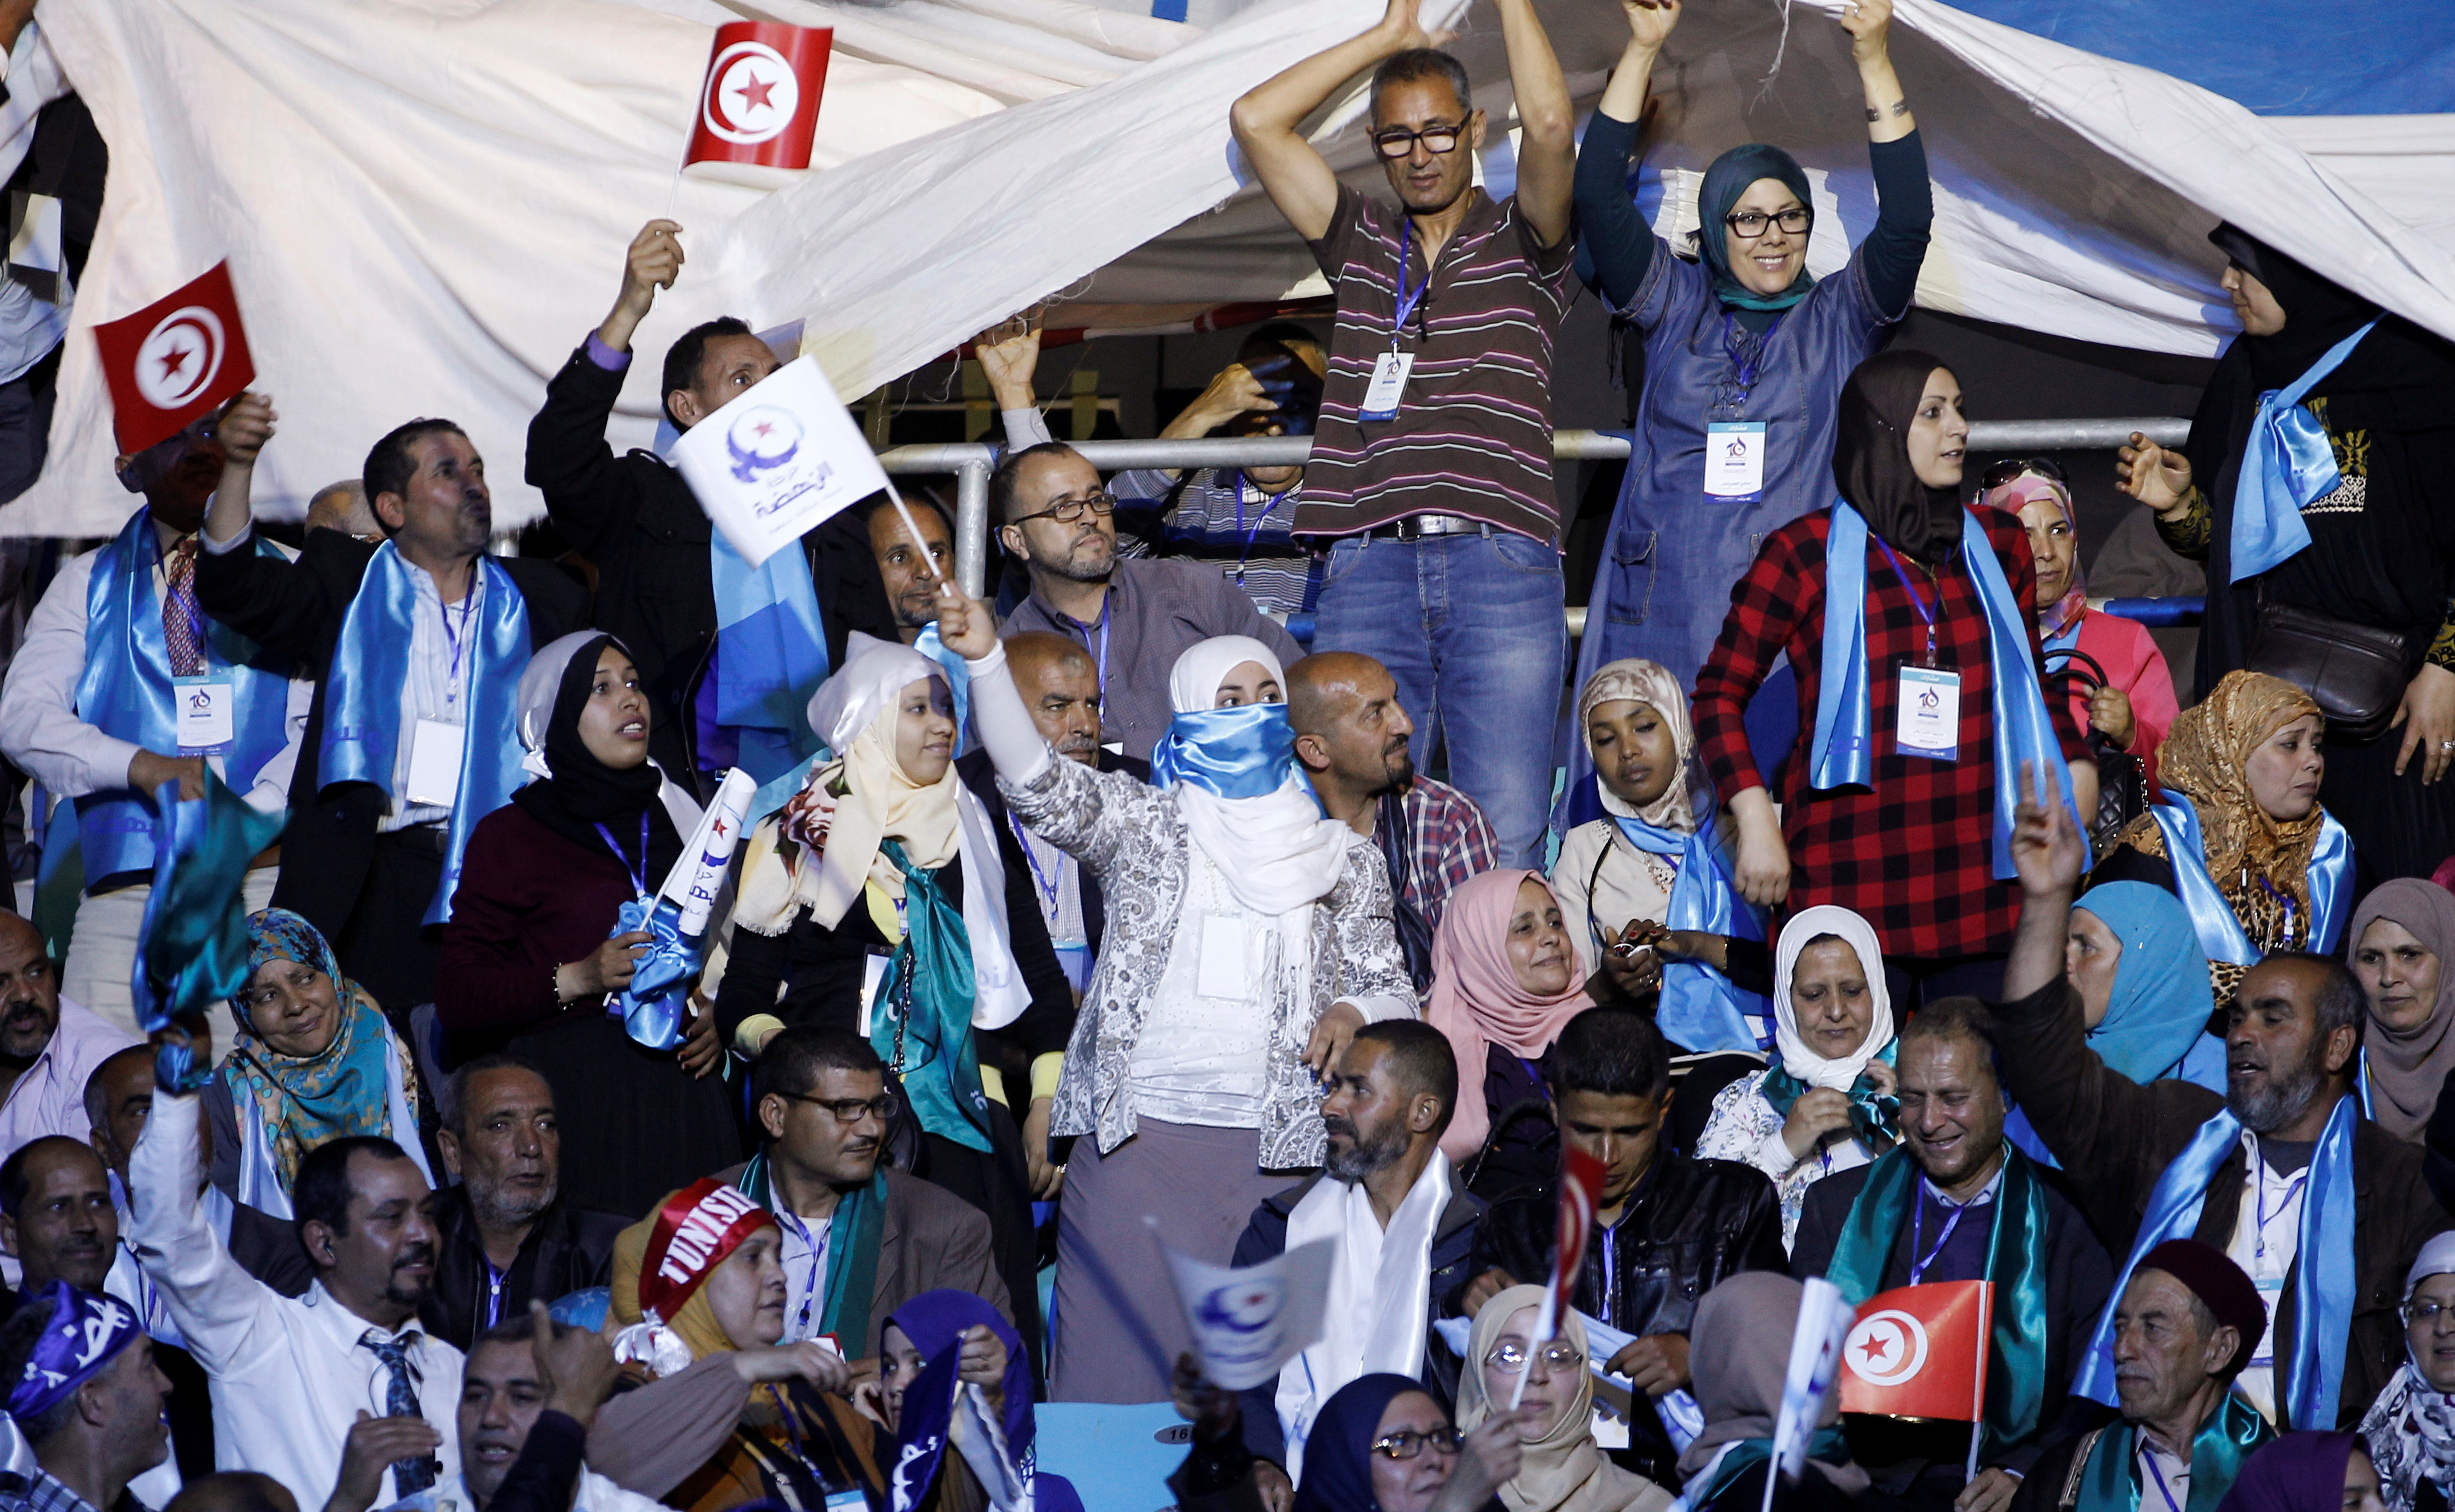 Supporters of the Ennahda movement holds flags during the movement's congress in Tunis,Tunisia May 20, 2016. REUTERS/Zoubeir Souissi - RTSF8BF